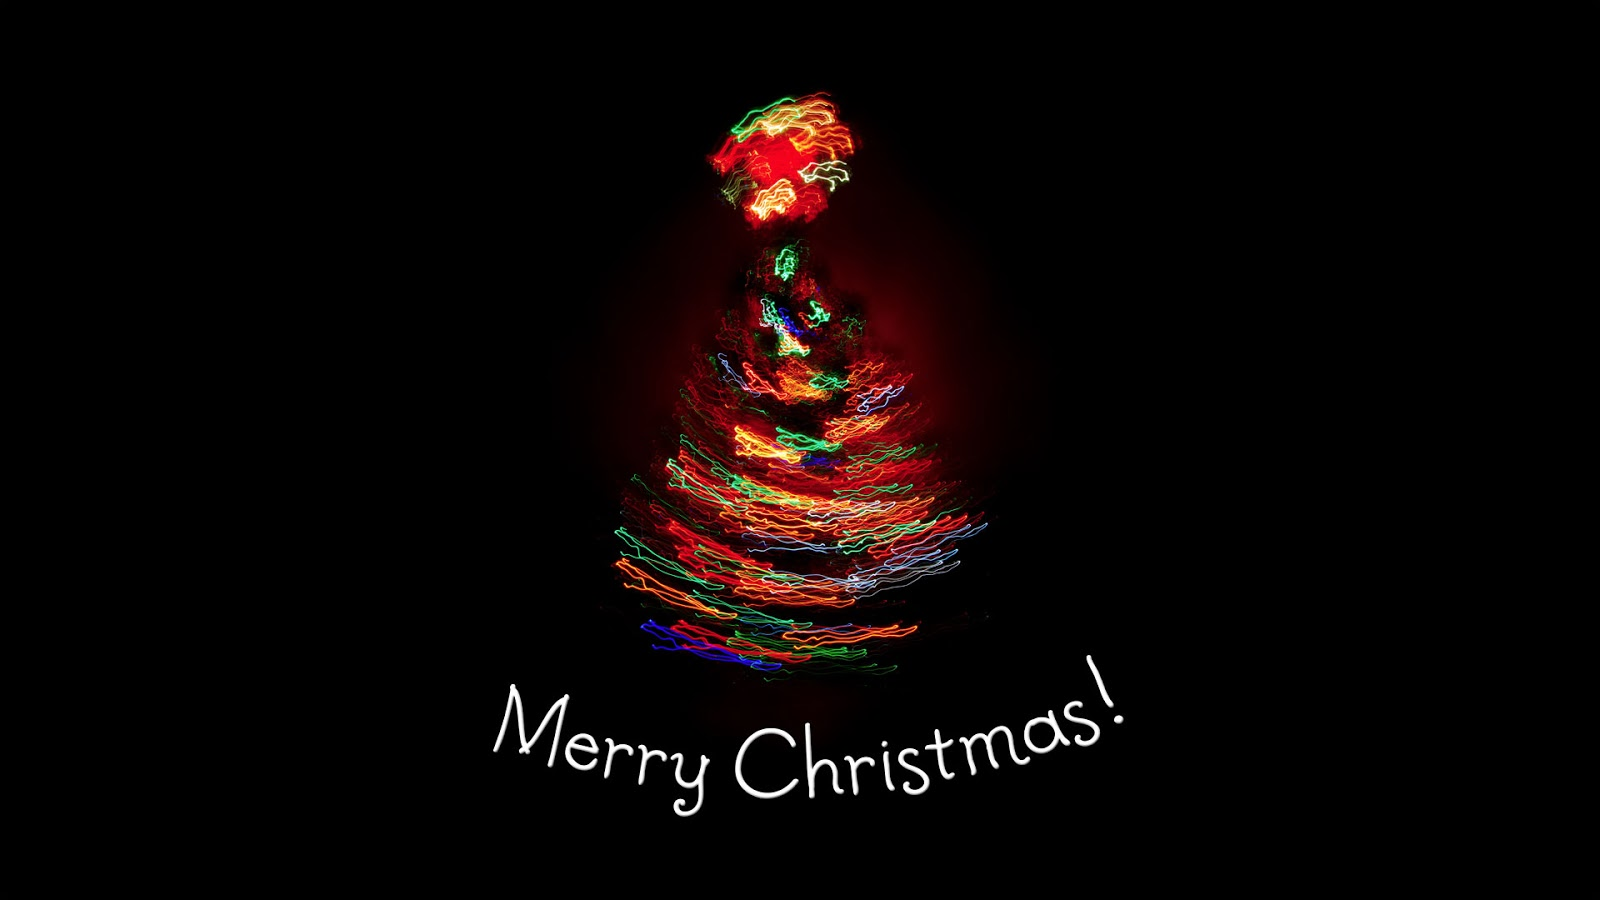 merry christmas in hd merry christmas wallpapers in hd 2013 free wallpaper